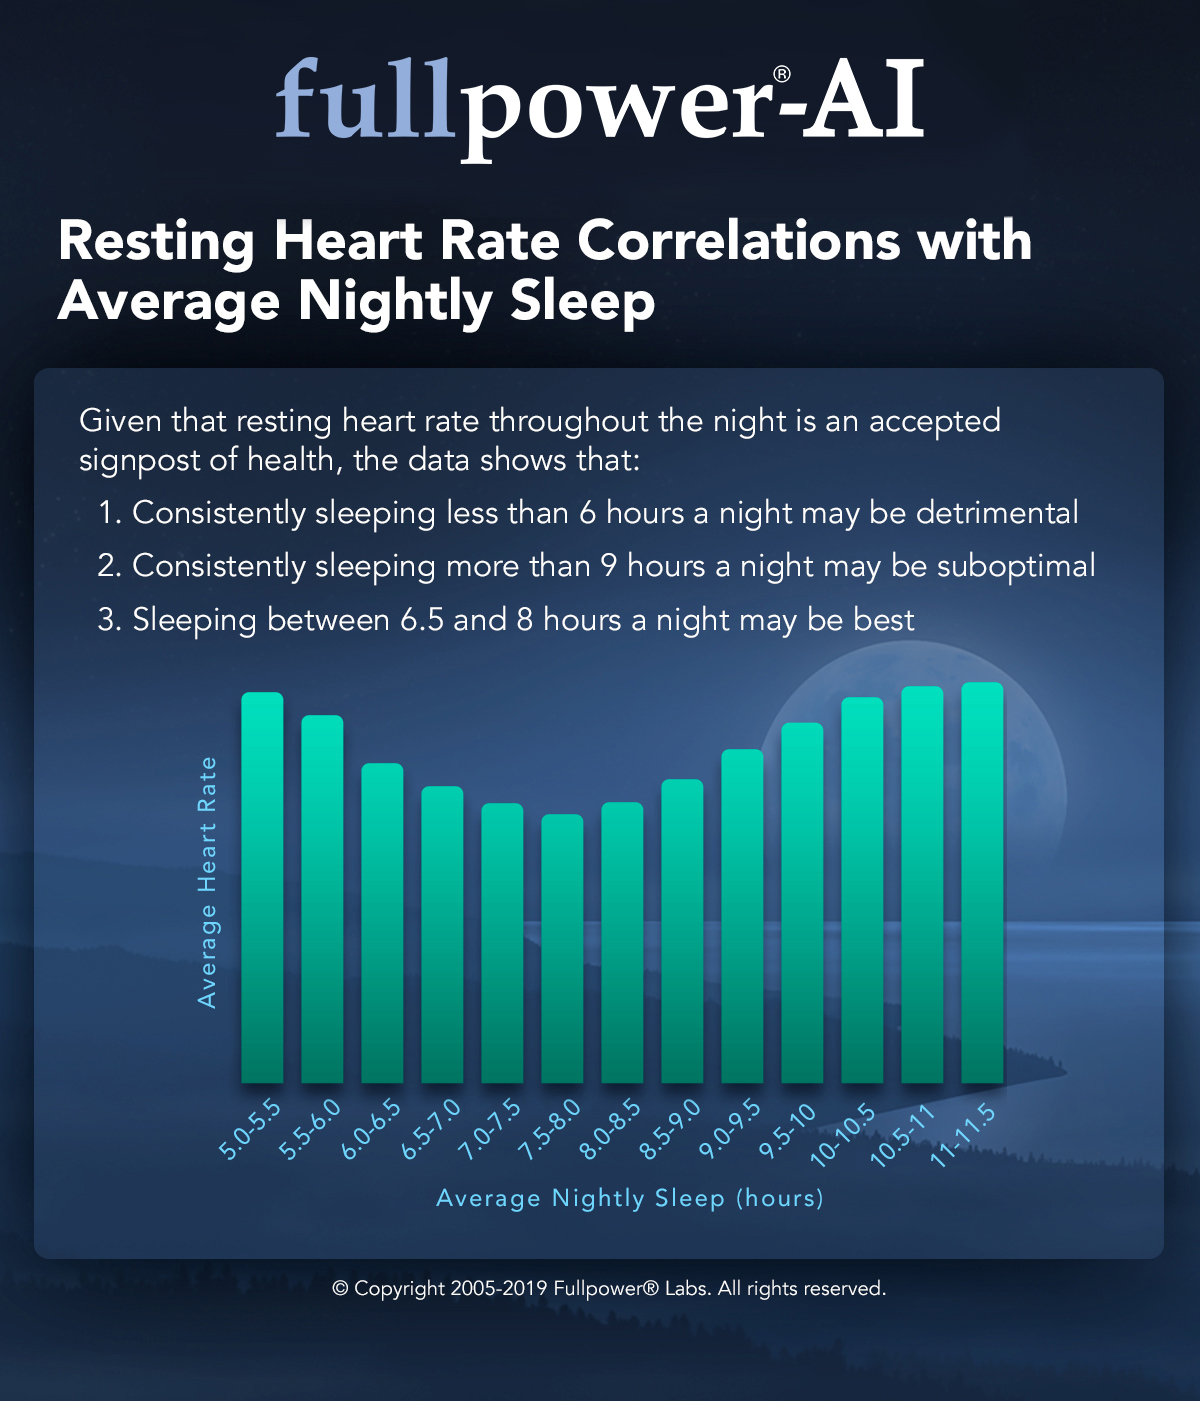 resting-heart-rate-correlations-with-average-nightly-sleep